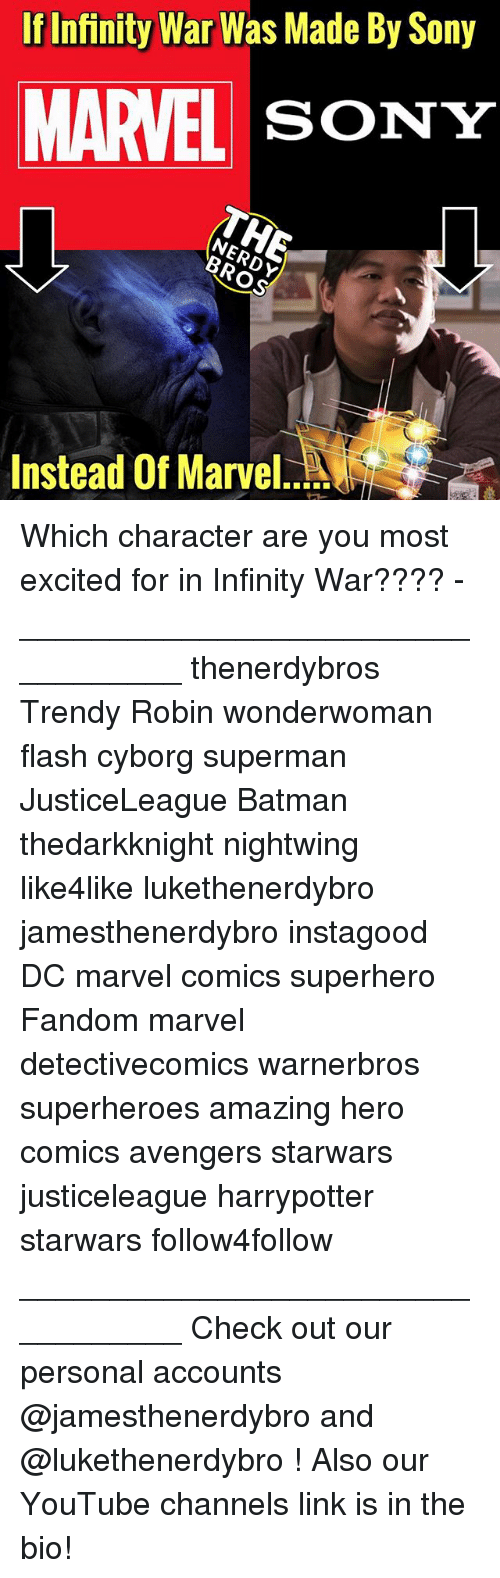 Batman, Marvel Comics, and Memes: If Infinity War Was Made By Sony  MARVEL SONY  Instead Of Marvel. Which character are you most excited for in Infinity War???? - __________________________________ thenerdybros Trendy Robin wonderwoman flash cyborg superman JusticeLeague Batman thedarkknight nightwing like4like lukethenerdybro jamesthenerdybro instagood DC marvel comics superhero Fandom marvel detectivecomics warnerbros superheroes amazing hero comics avengers starwars justiceleague harrypotter starwars follow4follow __________________________________ Check out our personal accounts @jamesthenerdybro and @lukethenerdybro ! Also our YouTube channels link is in the bio!